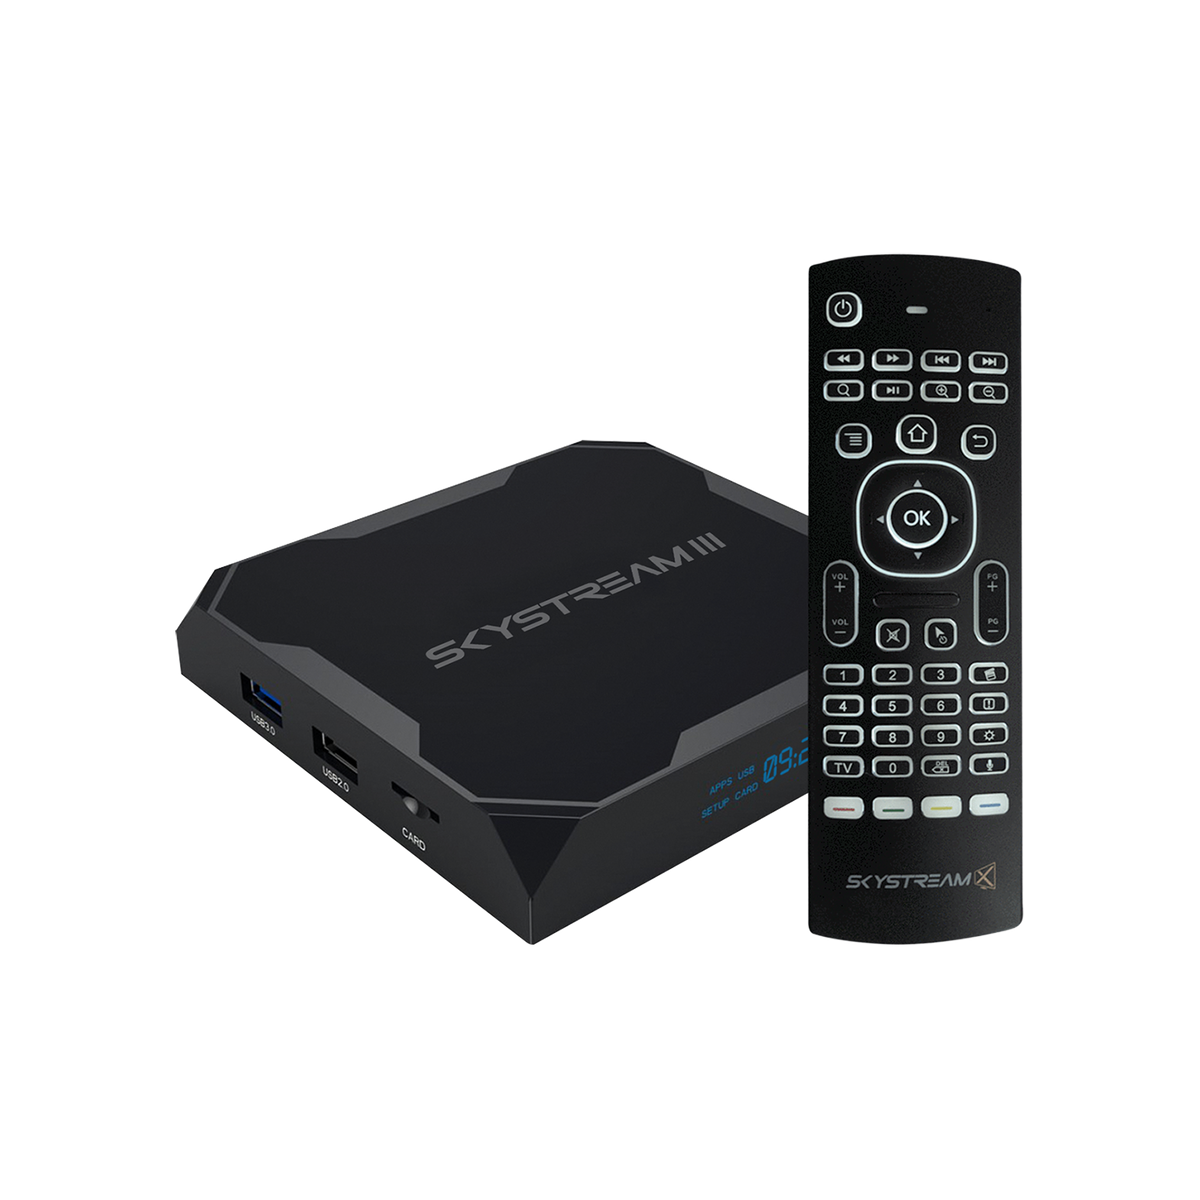 SkyStream 3 4K Android Streaming Media Player